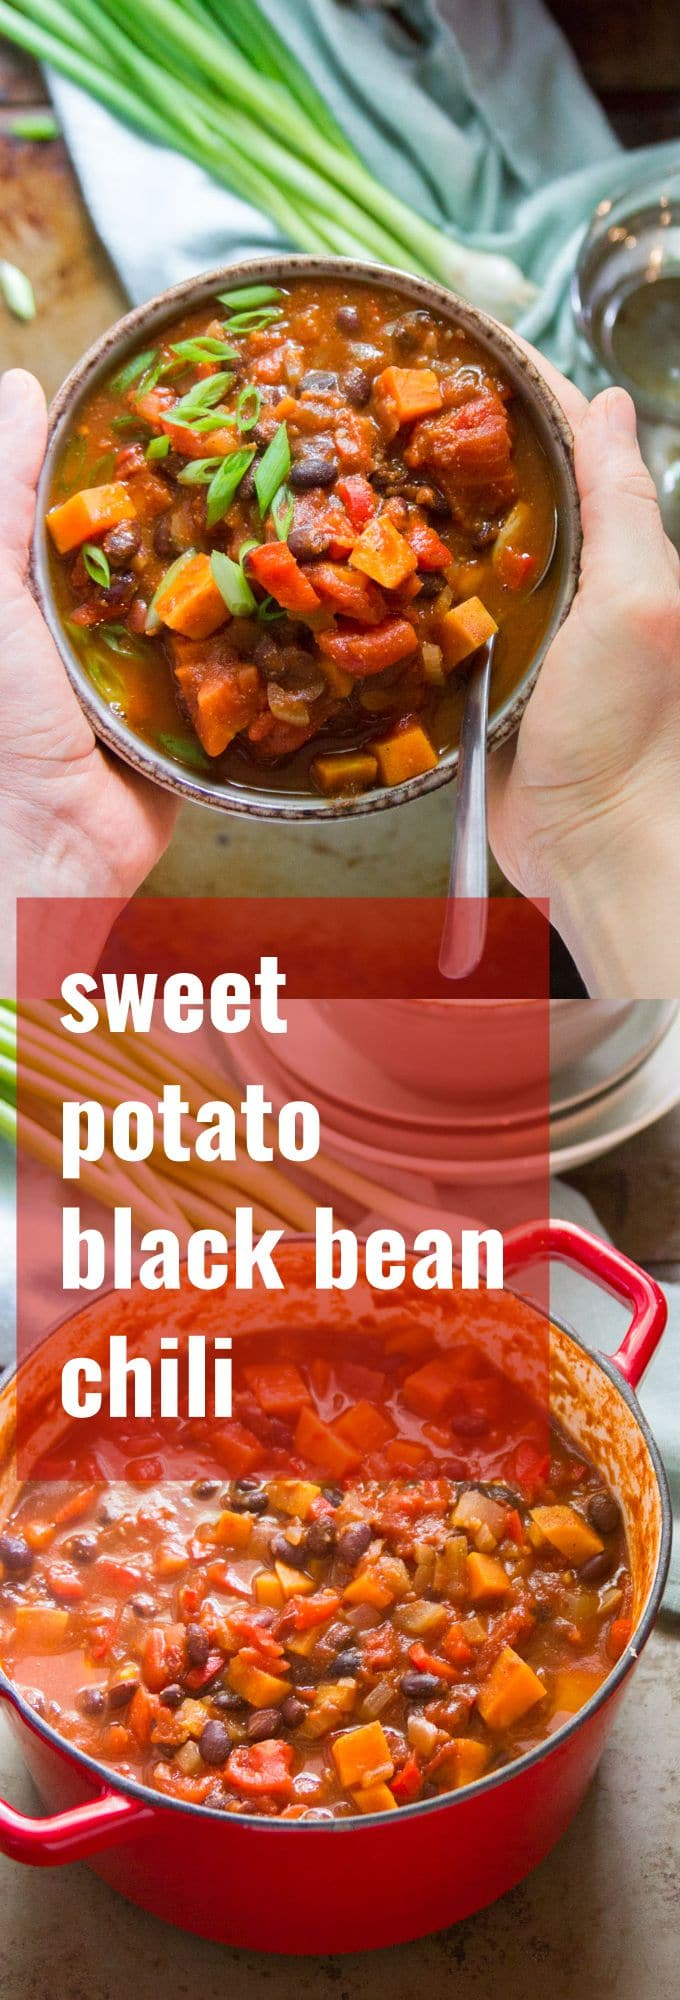 Chipotle Black Bean Sweet Potato Chili